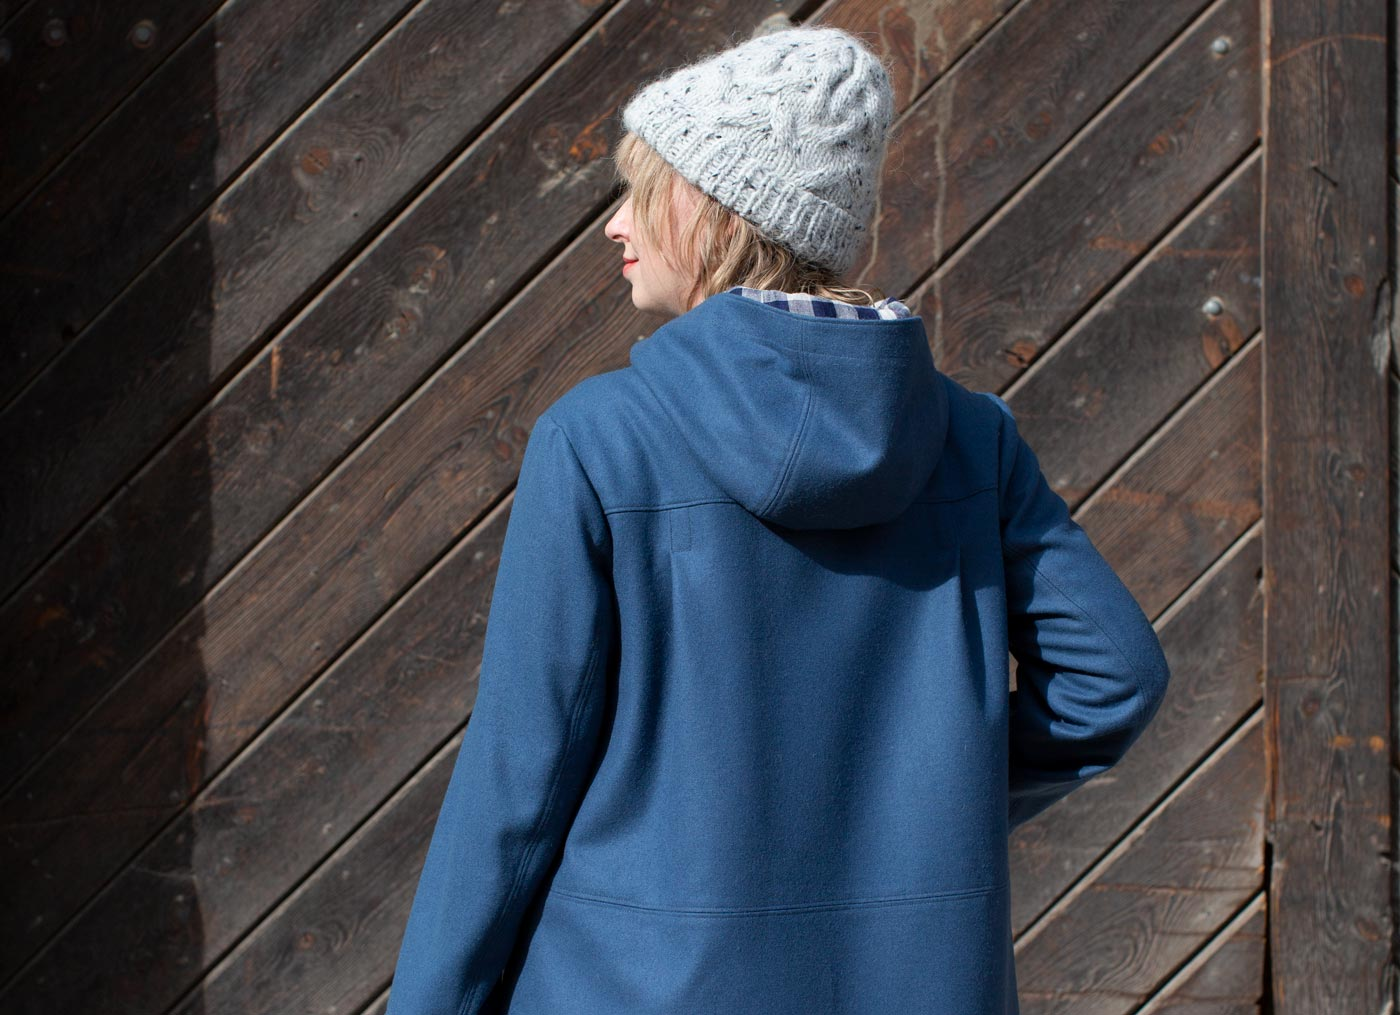 Amber stands facing away, showing the back of the uniform-blue parka. There are pleats on each side of the coat at her shoulder blades, and her hood is down, resting on the back of the coat.